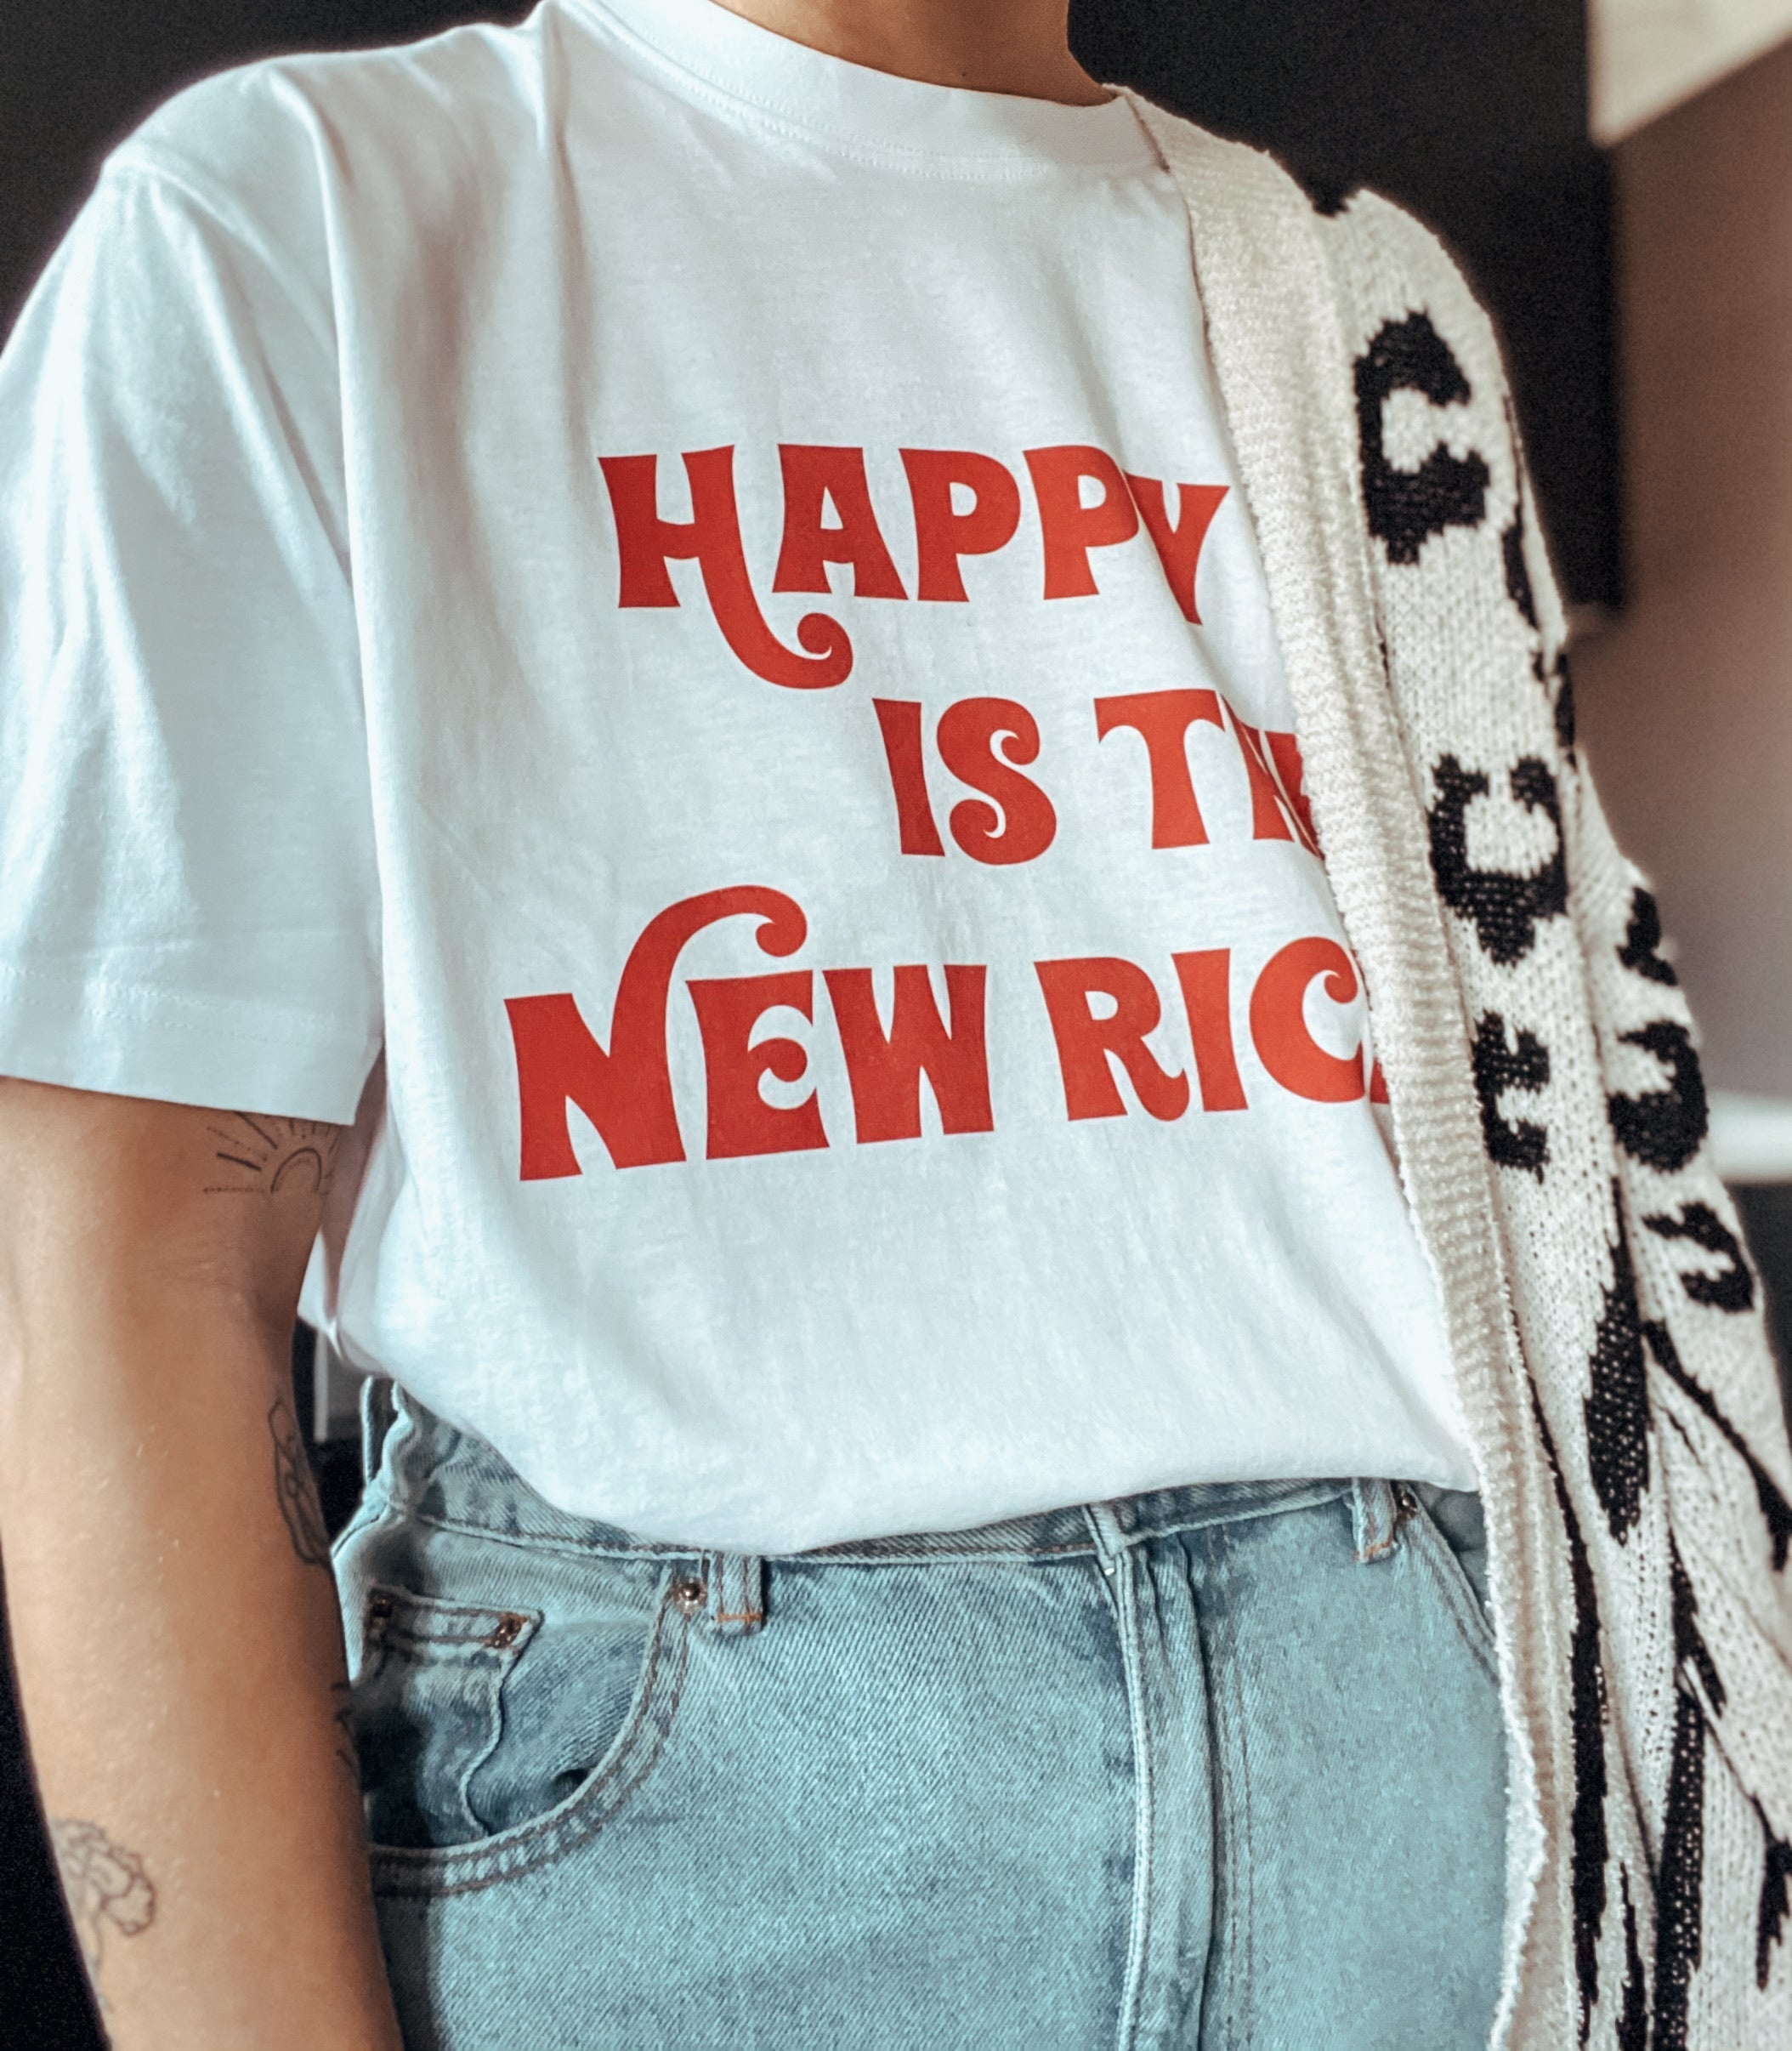 HAPPY IS THE NEW RICH | UNISEX WHITE TEE